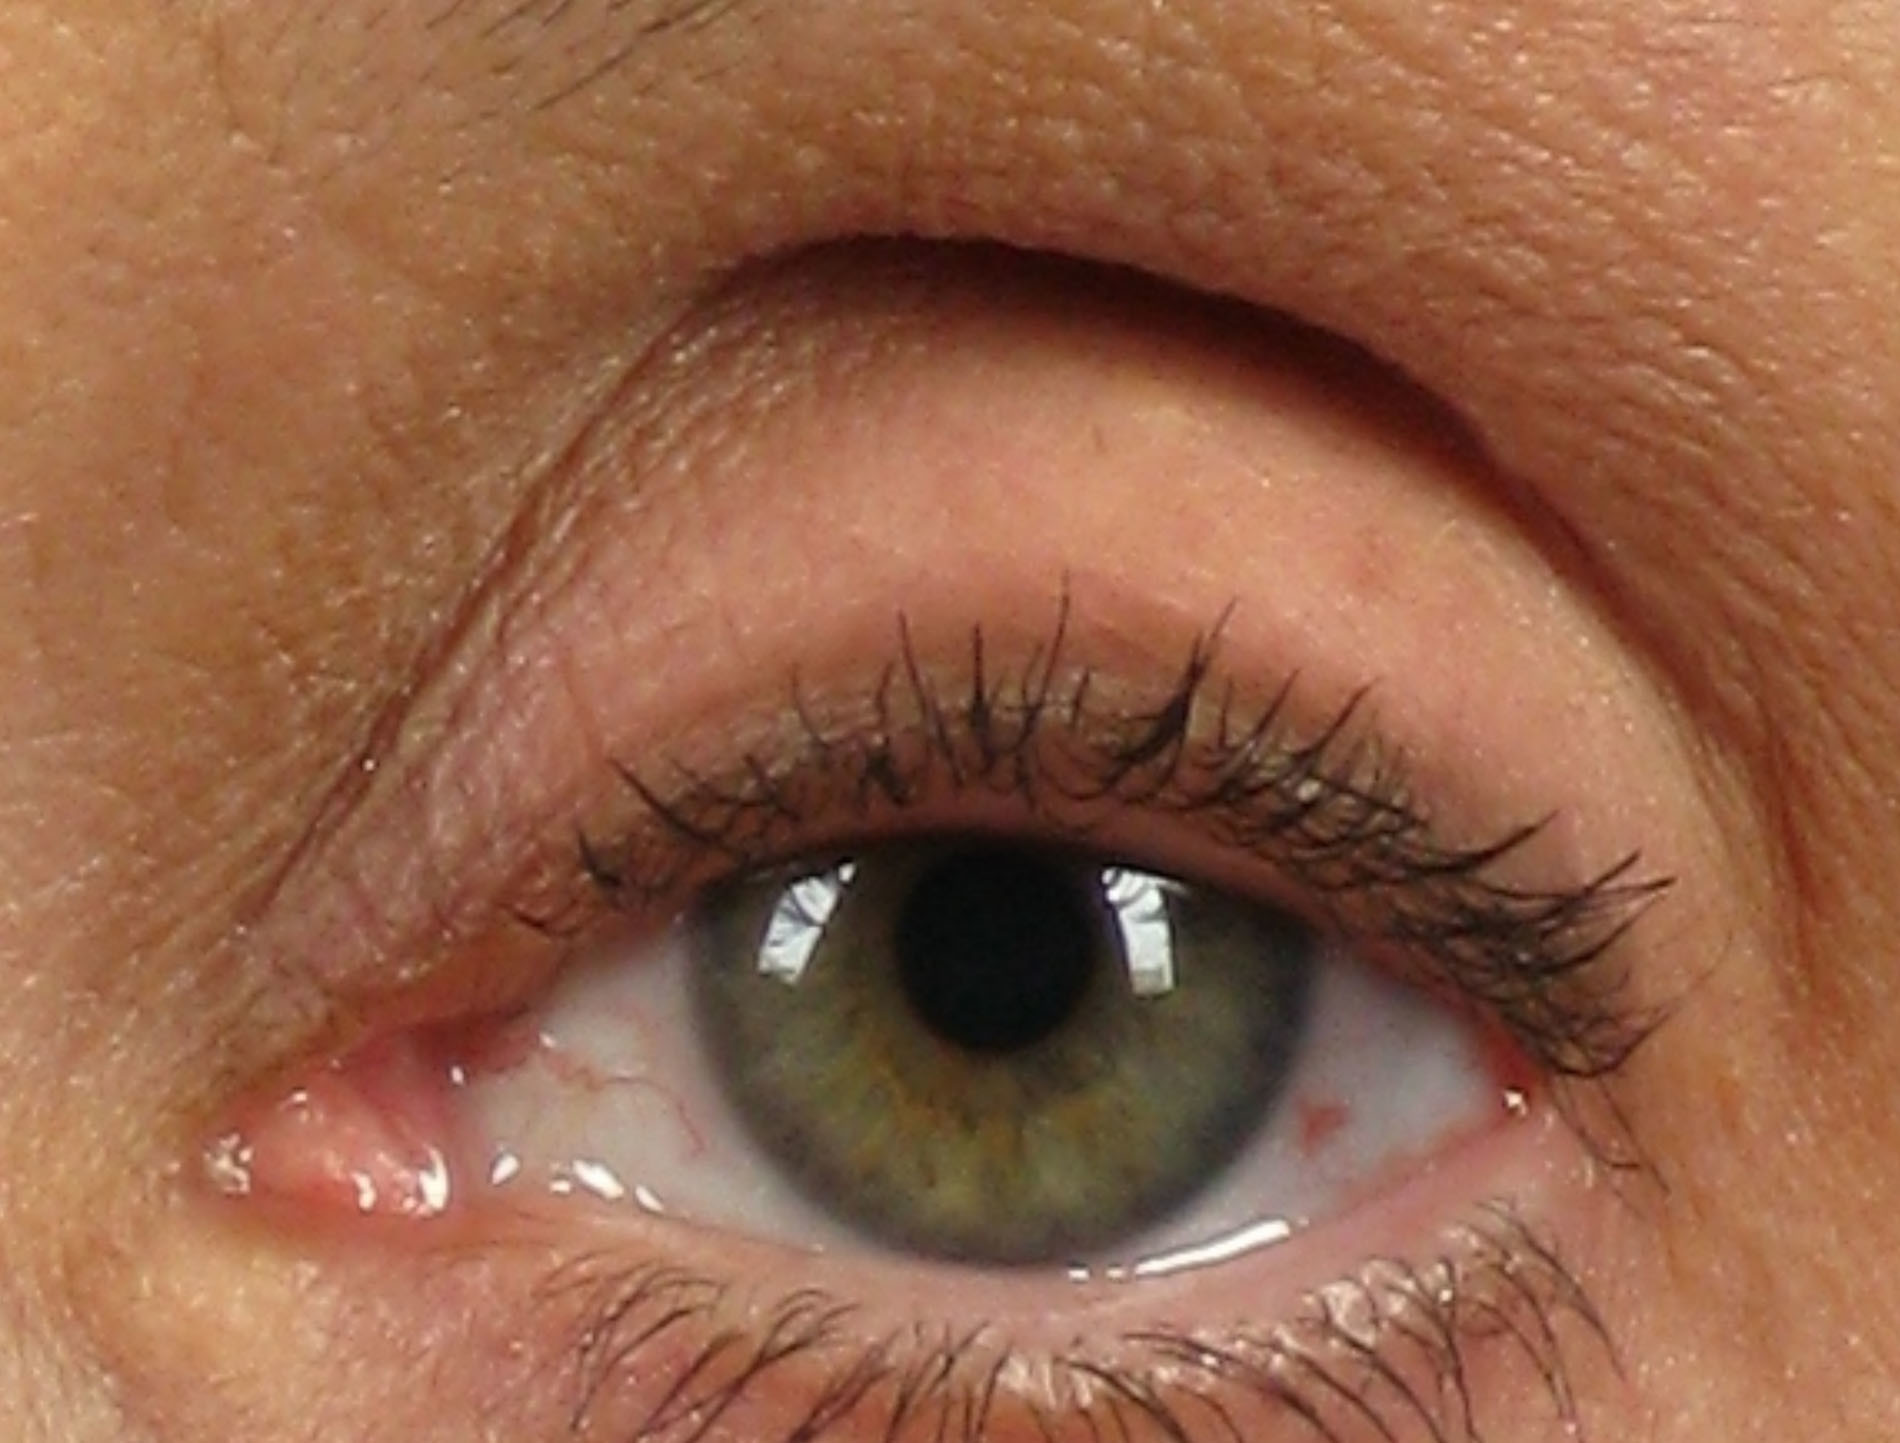 steroid eye drops for episcleritis